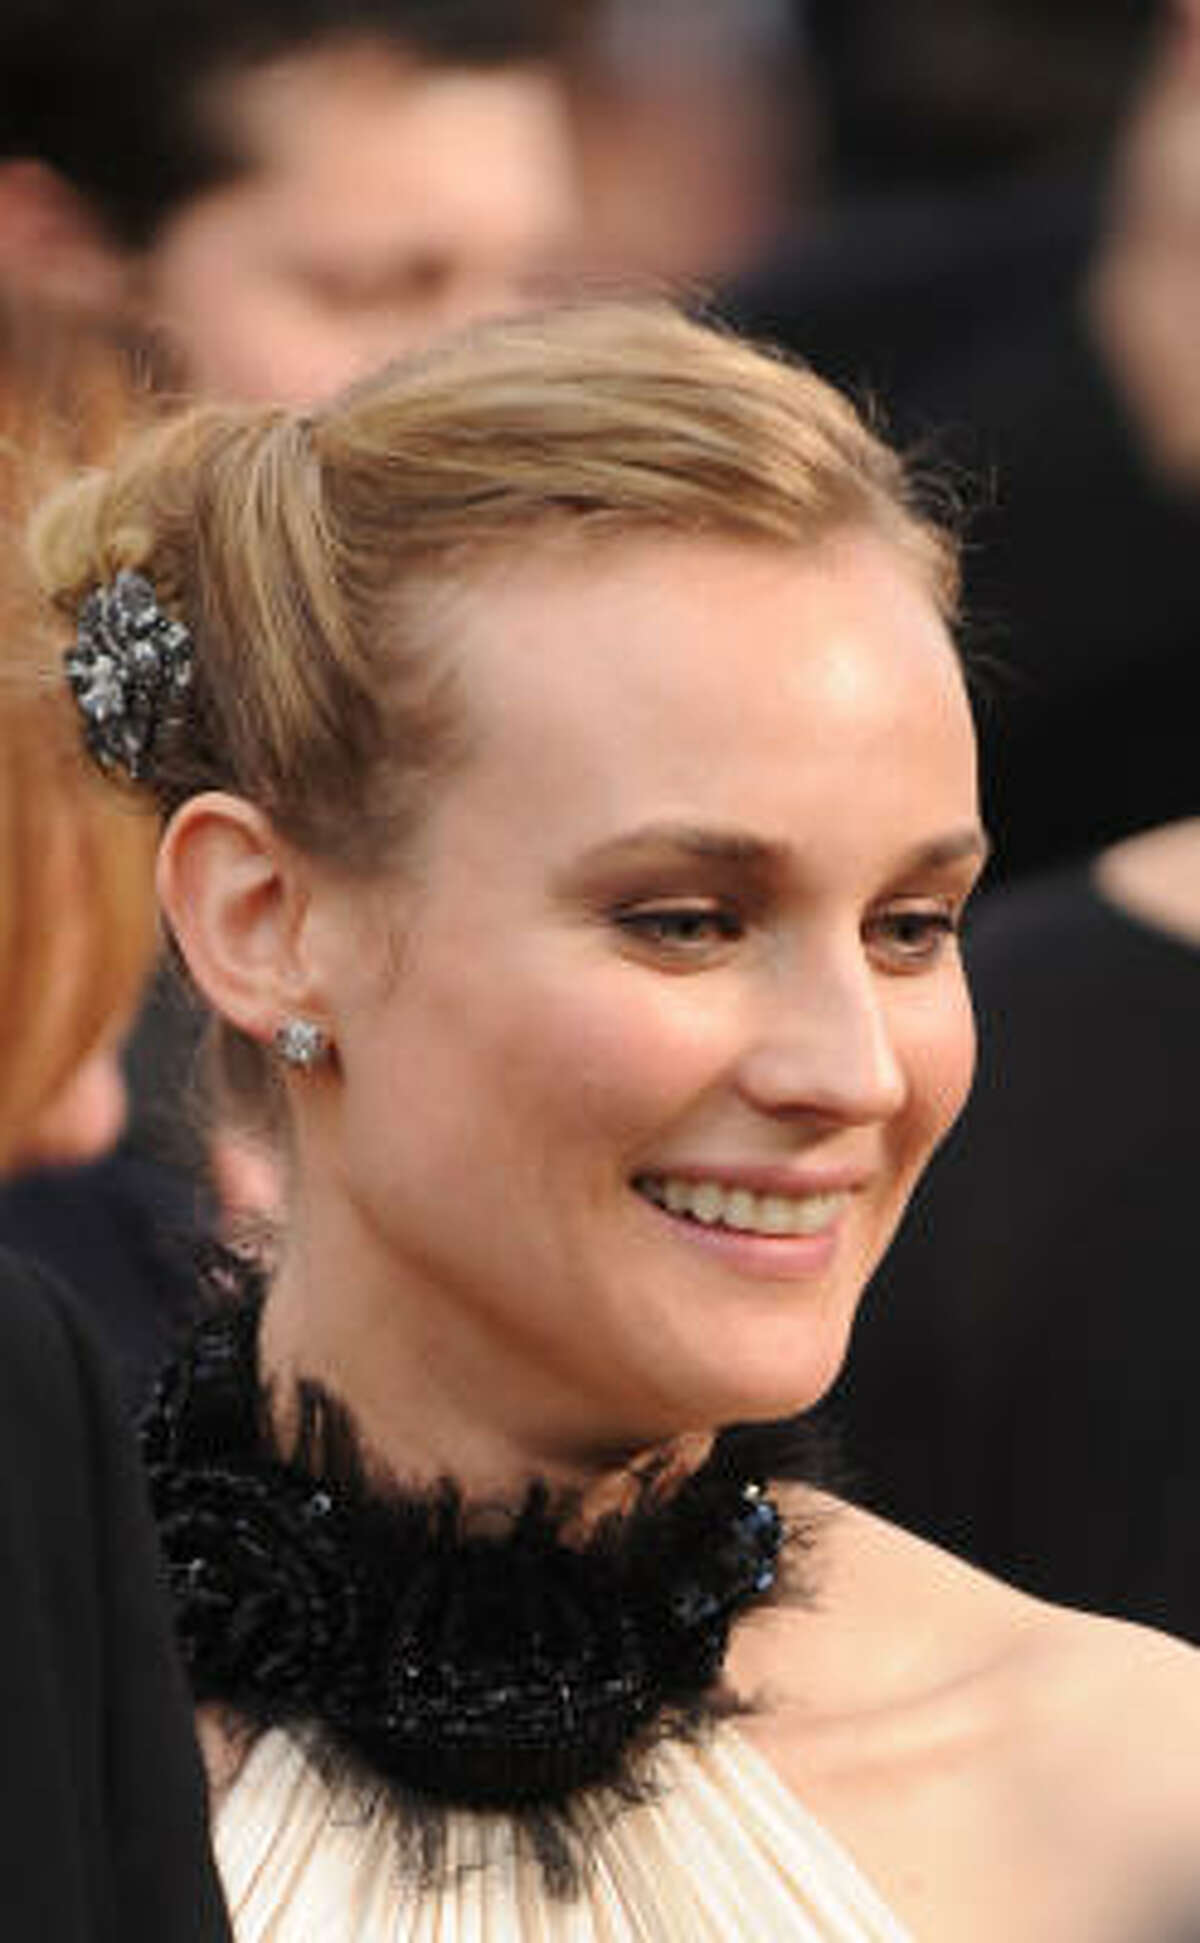 Diane Kruger: Hair swept back and tied in the back with lots of little knots. Glorious or inglorious? You decide.